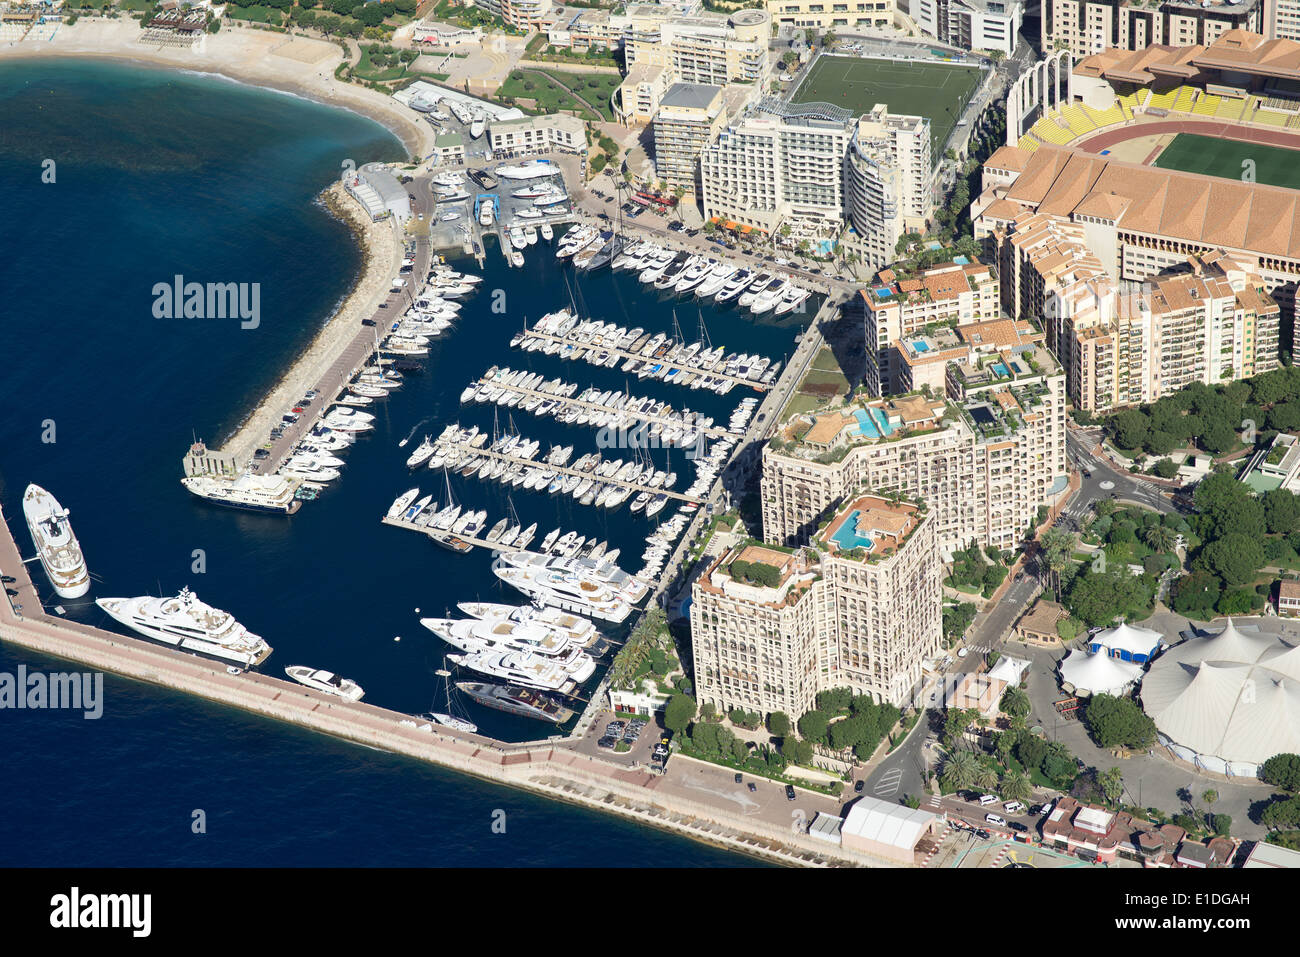 INTERNATIONAL BORDER: FONTVIEILLE HOUSING DEVELOPMENT (IN MONACO) AND CAP D'AIL MARINA (IN FRANCE) (aerial view). - Stock Image